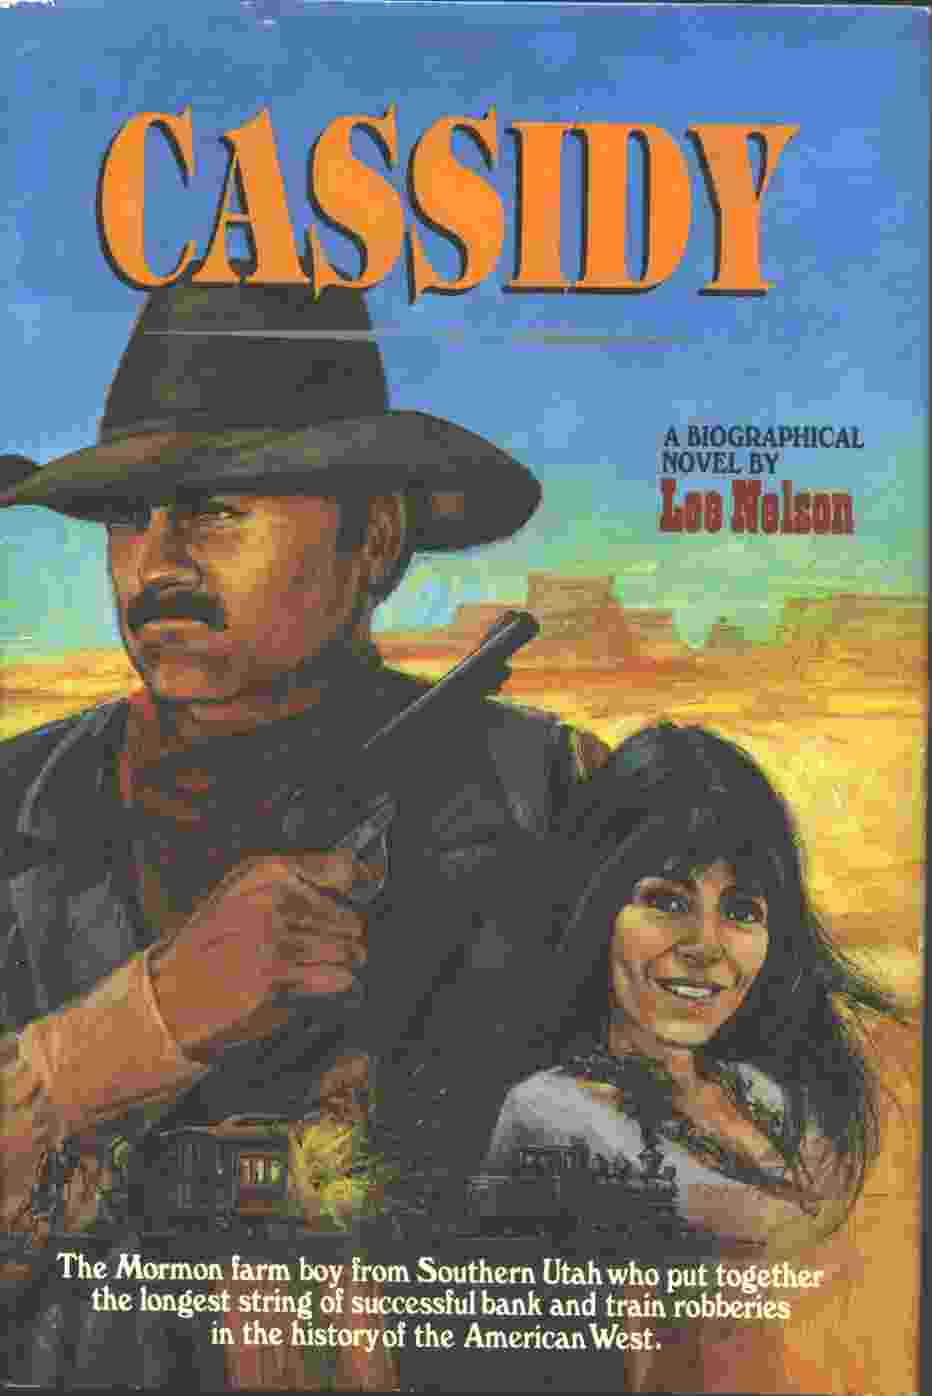 CASSIDY -  A Biographical Novel on Butch Cassidy, Nelson, Lee